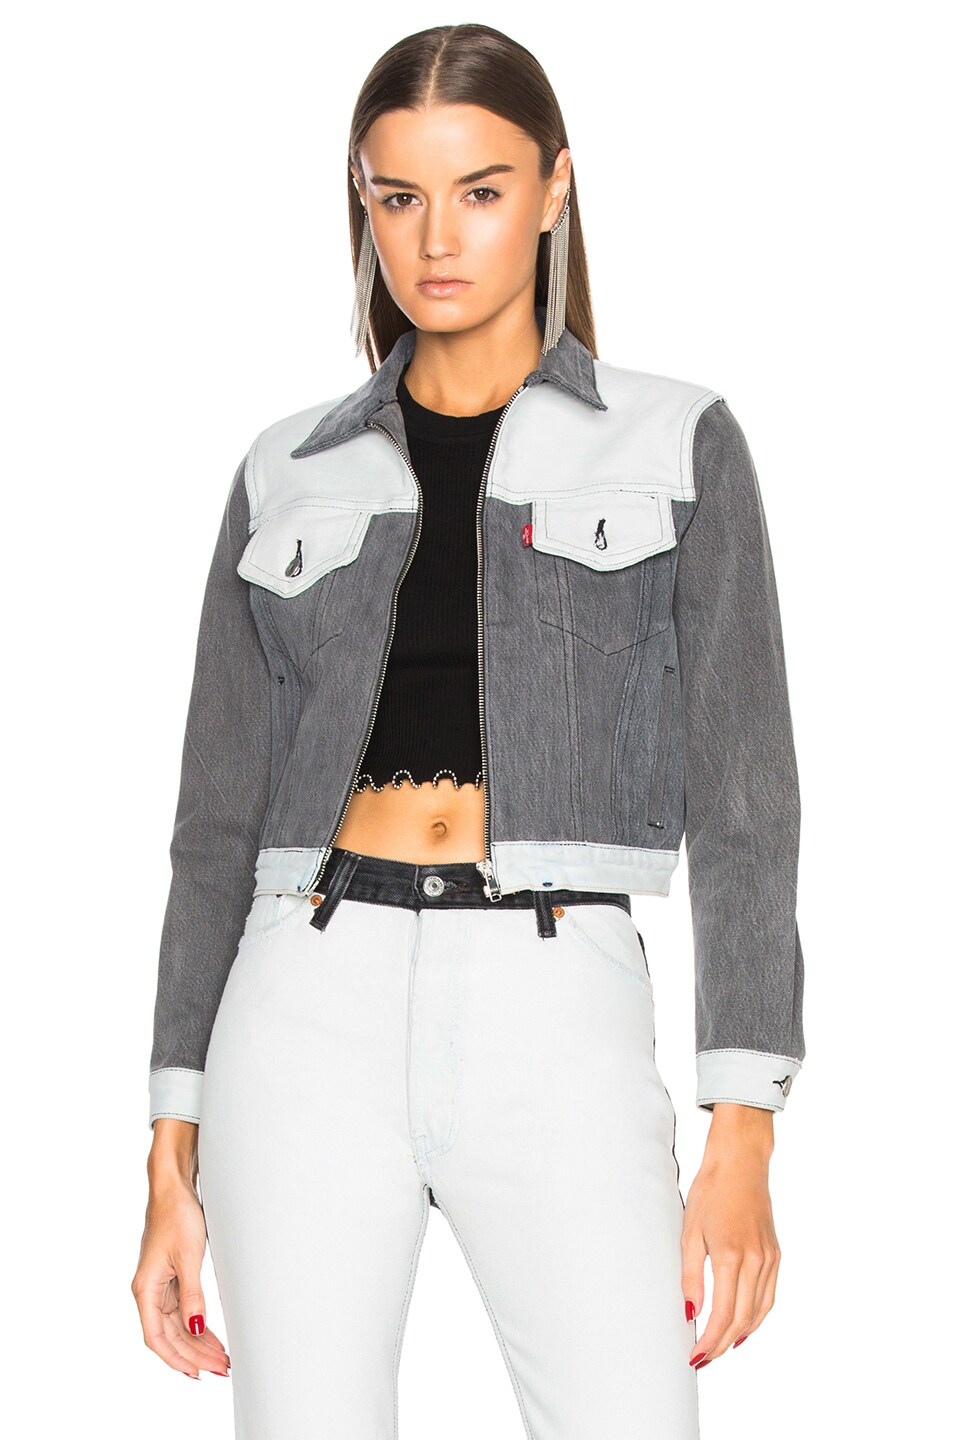 Image 2 of RE/DONE LEVI'S Heritage Box Jacket in Black & White